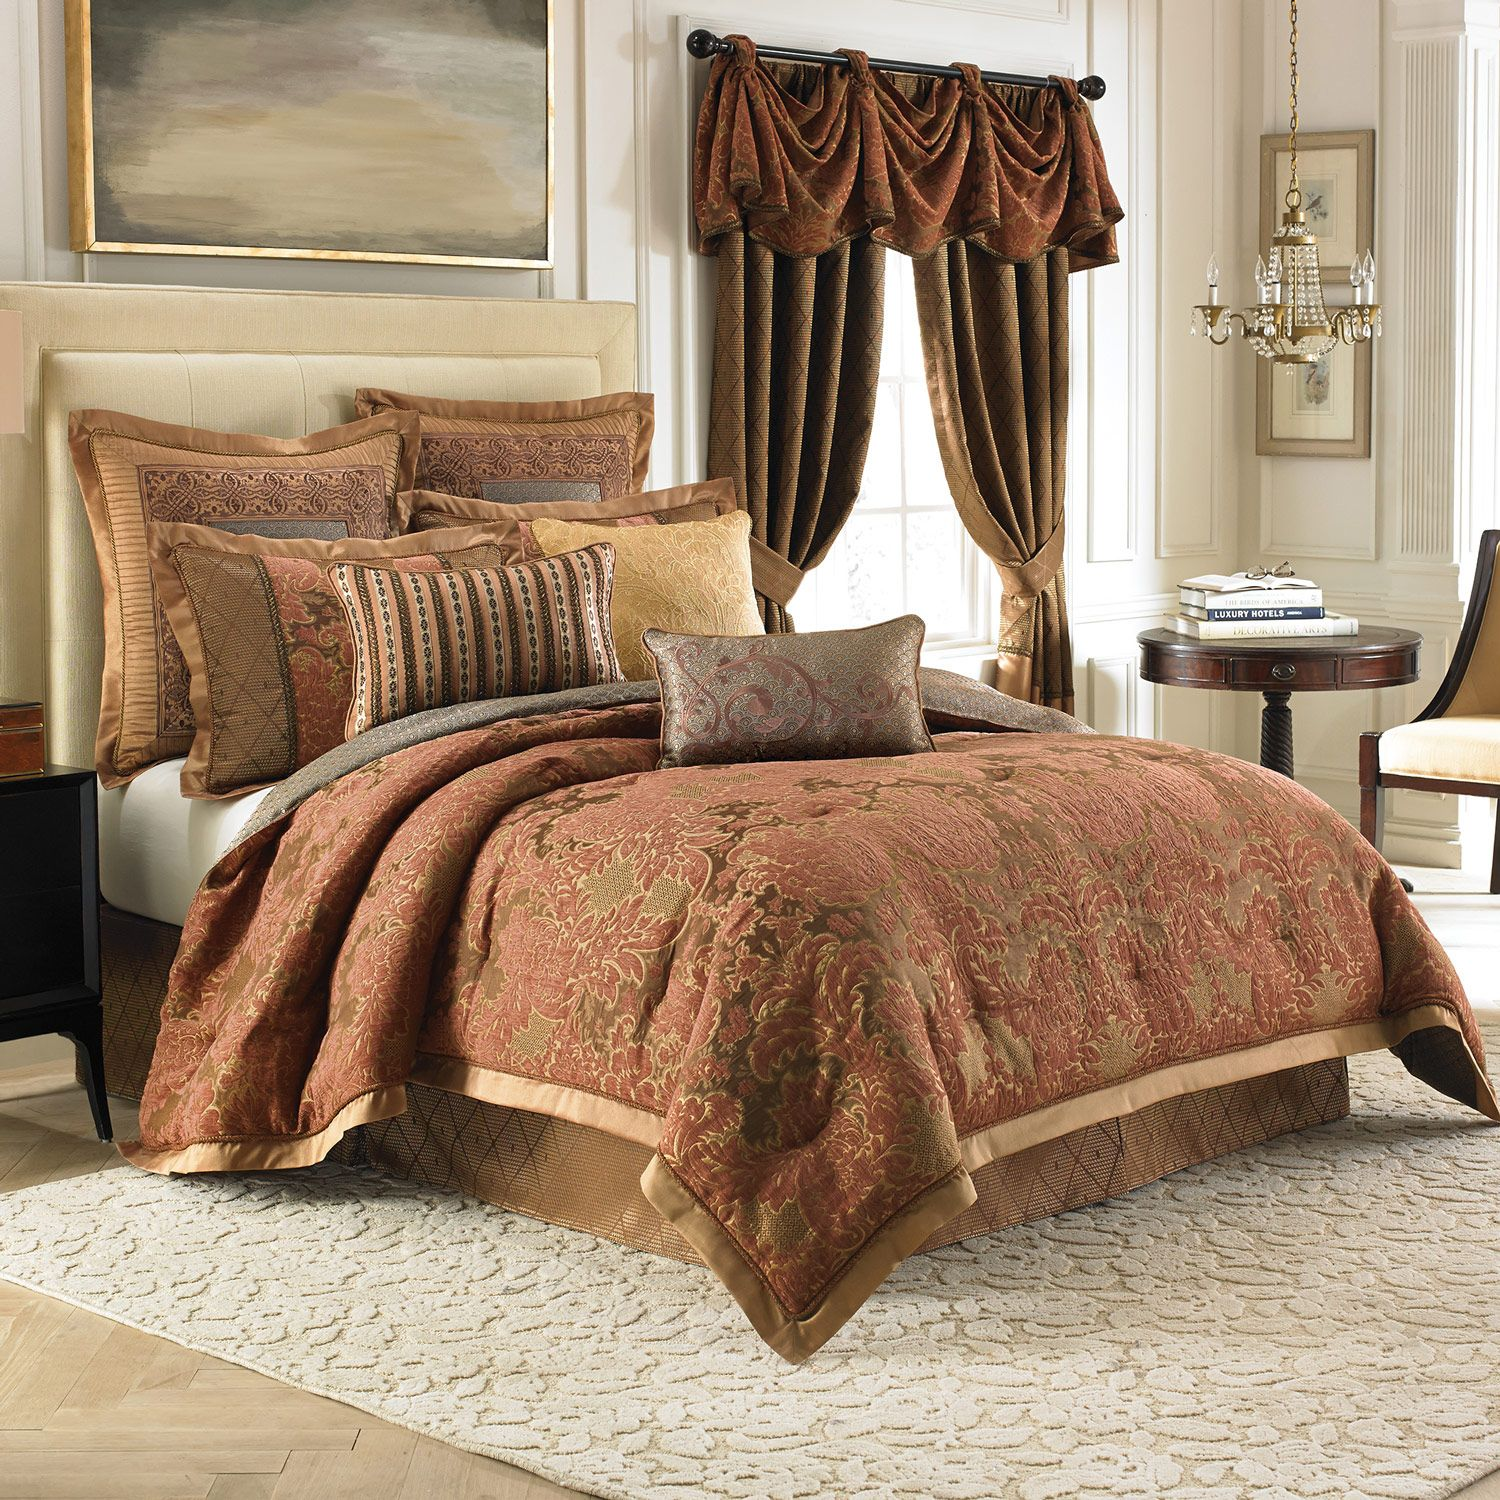 interior-dark-brown-curtains-plus-white-bed-having-brown-cream-comforter-bedding-set-placed-on-the-white-rug-bedroom-comforter-and-curtain-sets